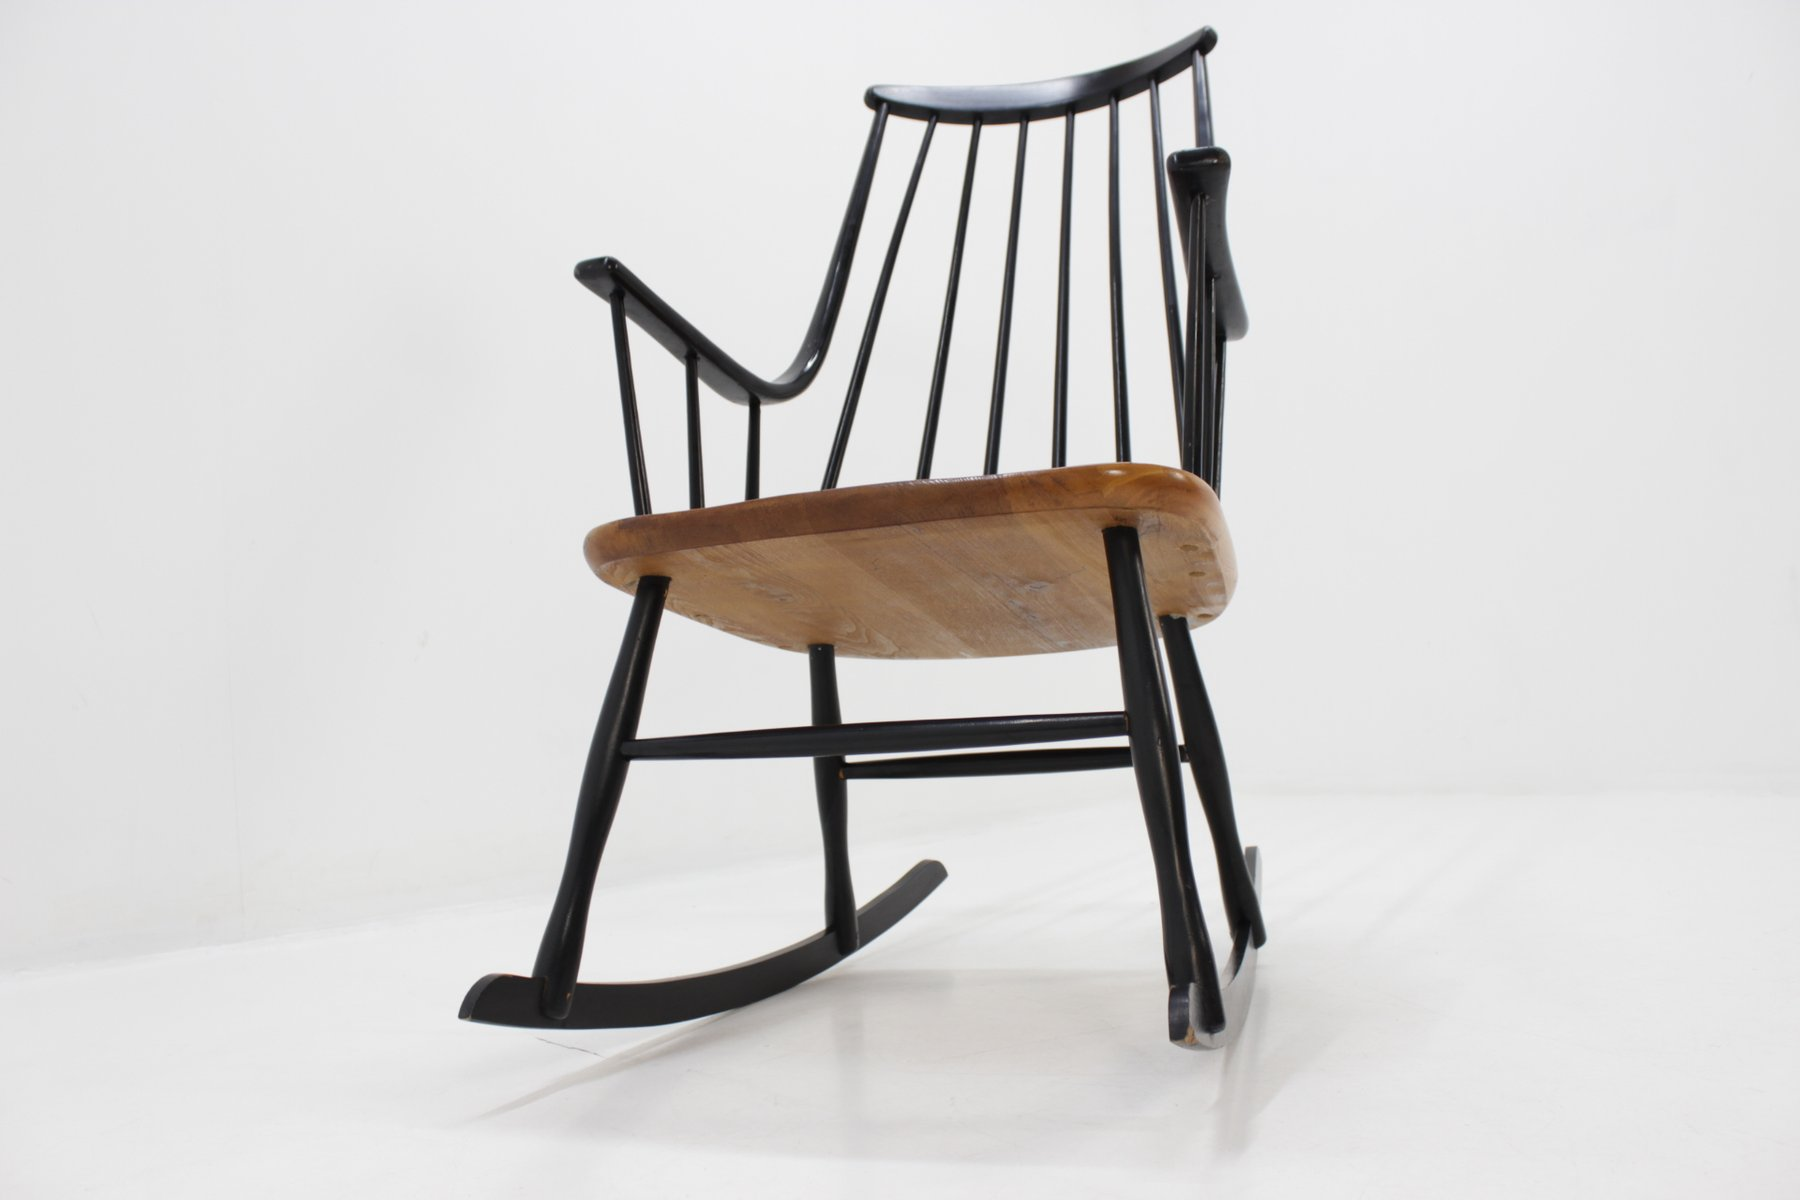 rocking chair grandessa scandinave par lena larsson pour nesto 1958 en vente sur pamono. Black Bedroom Furniture Sets. Home Design Ideas